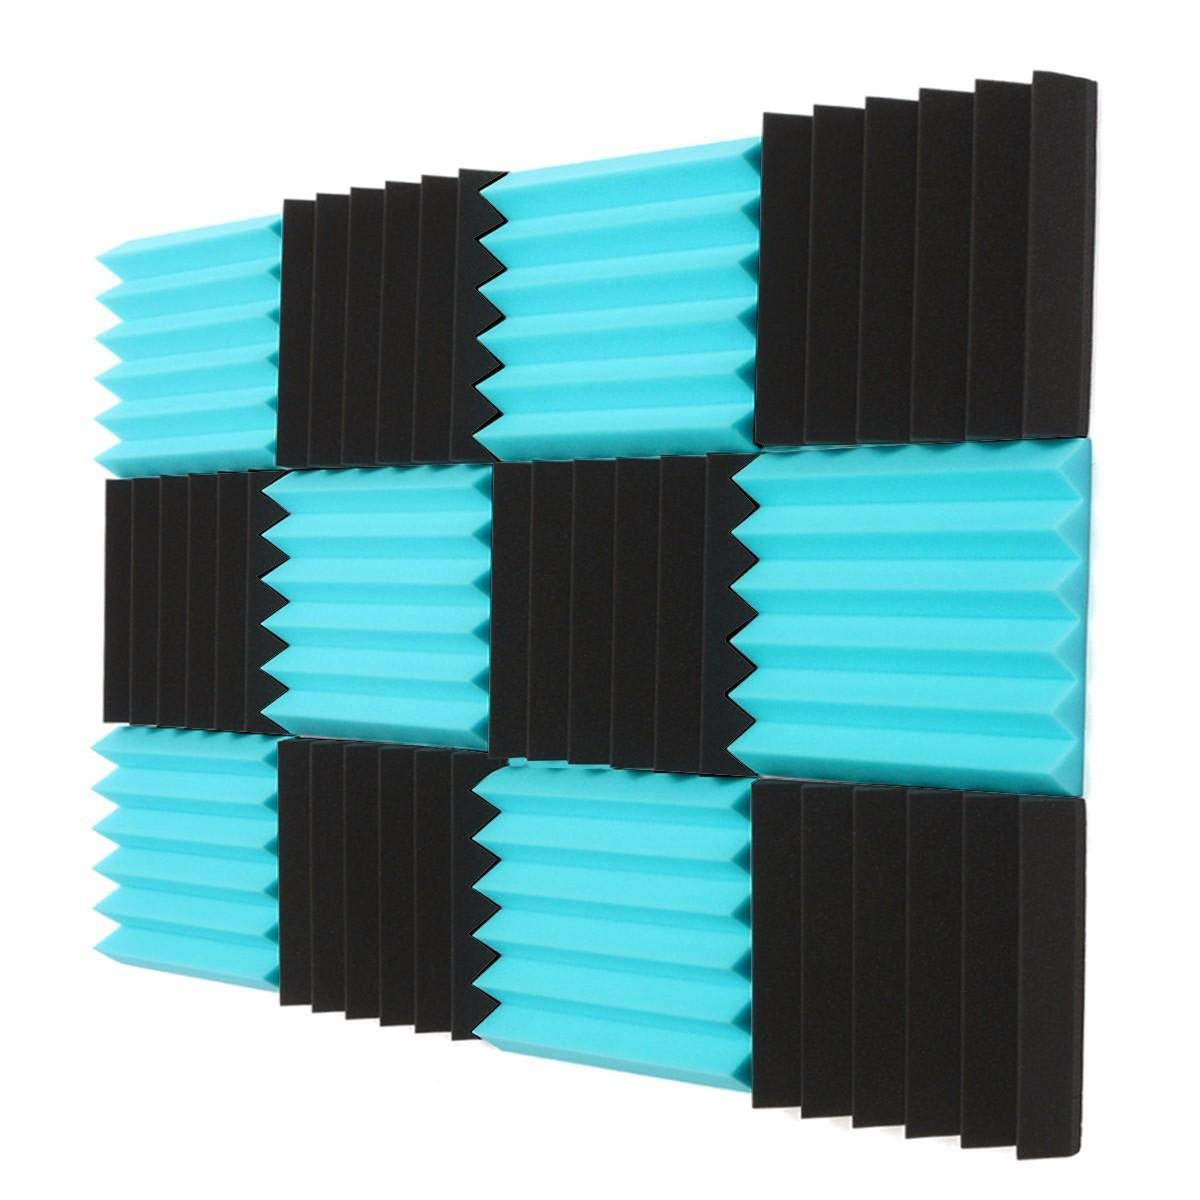 Stock_Home, Raw Materials, 12Pcs Blue/Charcoal Acoustic Wedge Soundproof Studio Foam Tiles